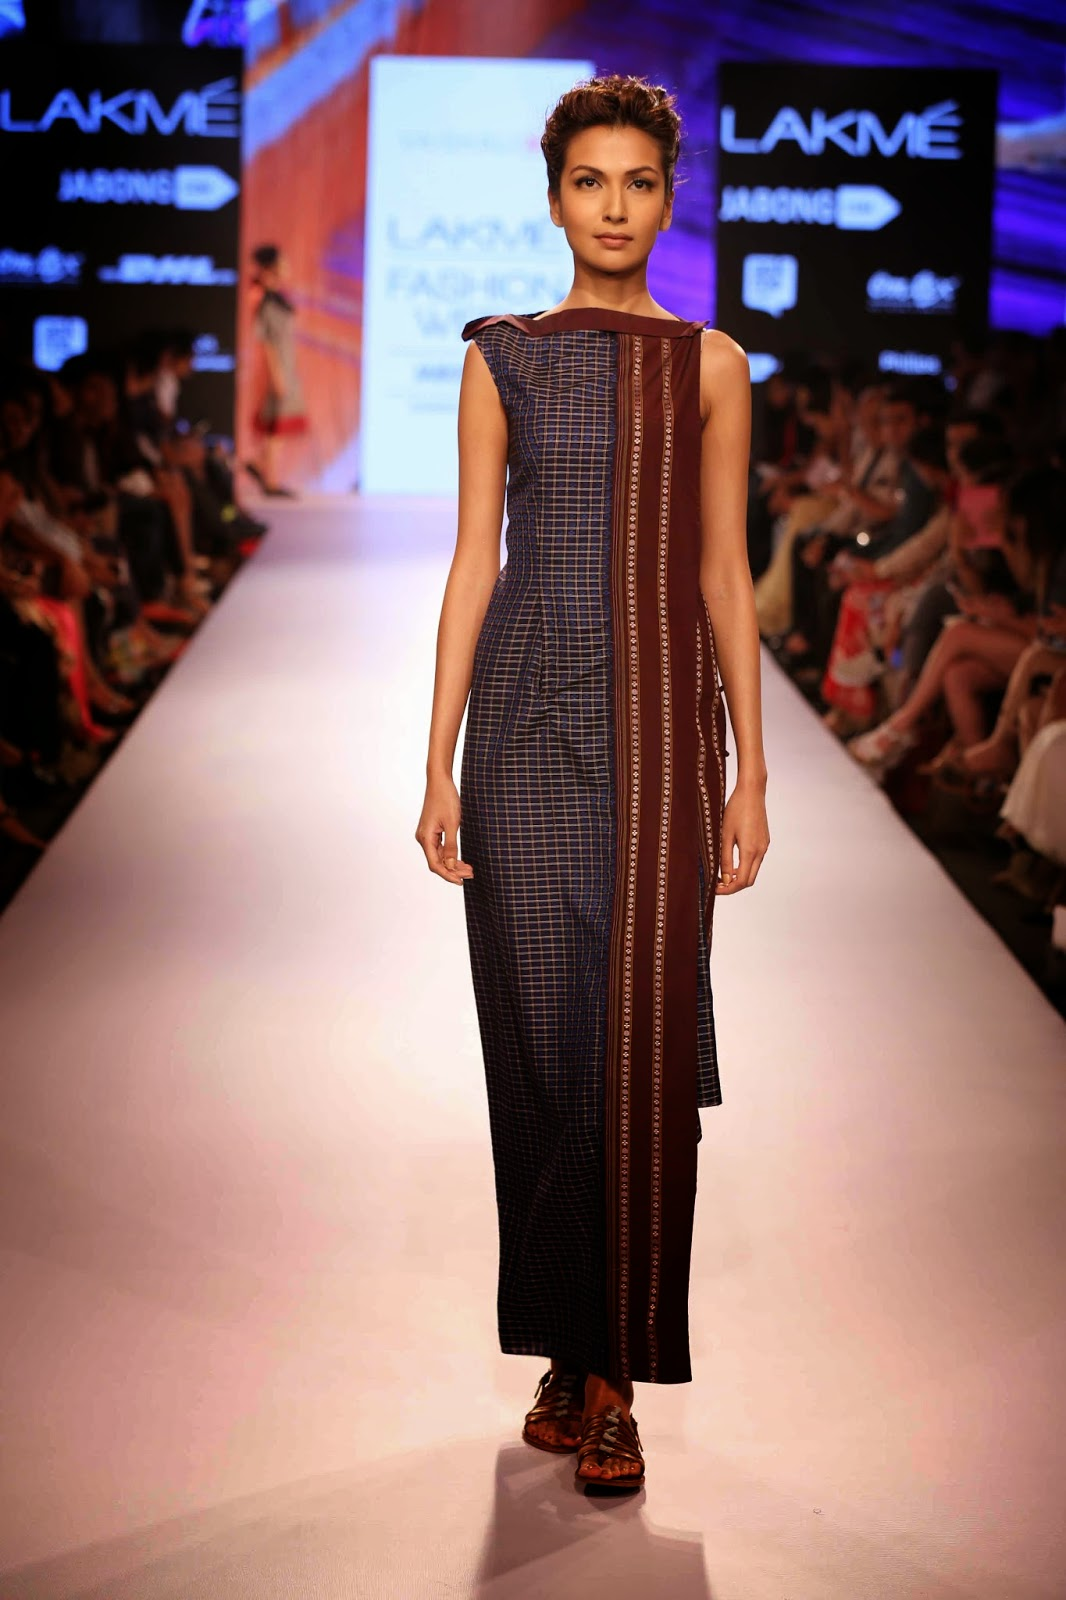 http://aquaintperspective.blogspot.in/, LIFW Day1, Vaishali Shadangule